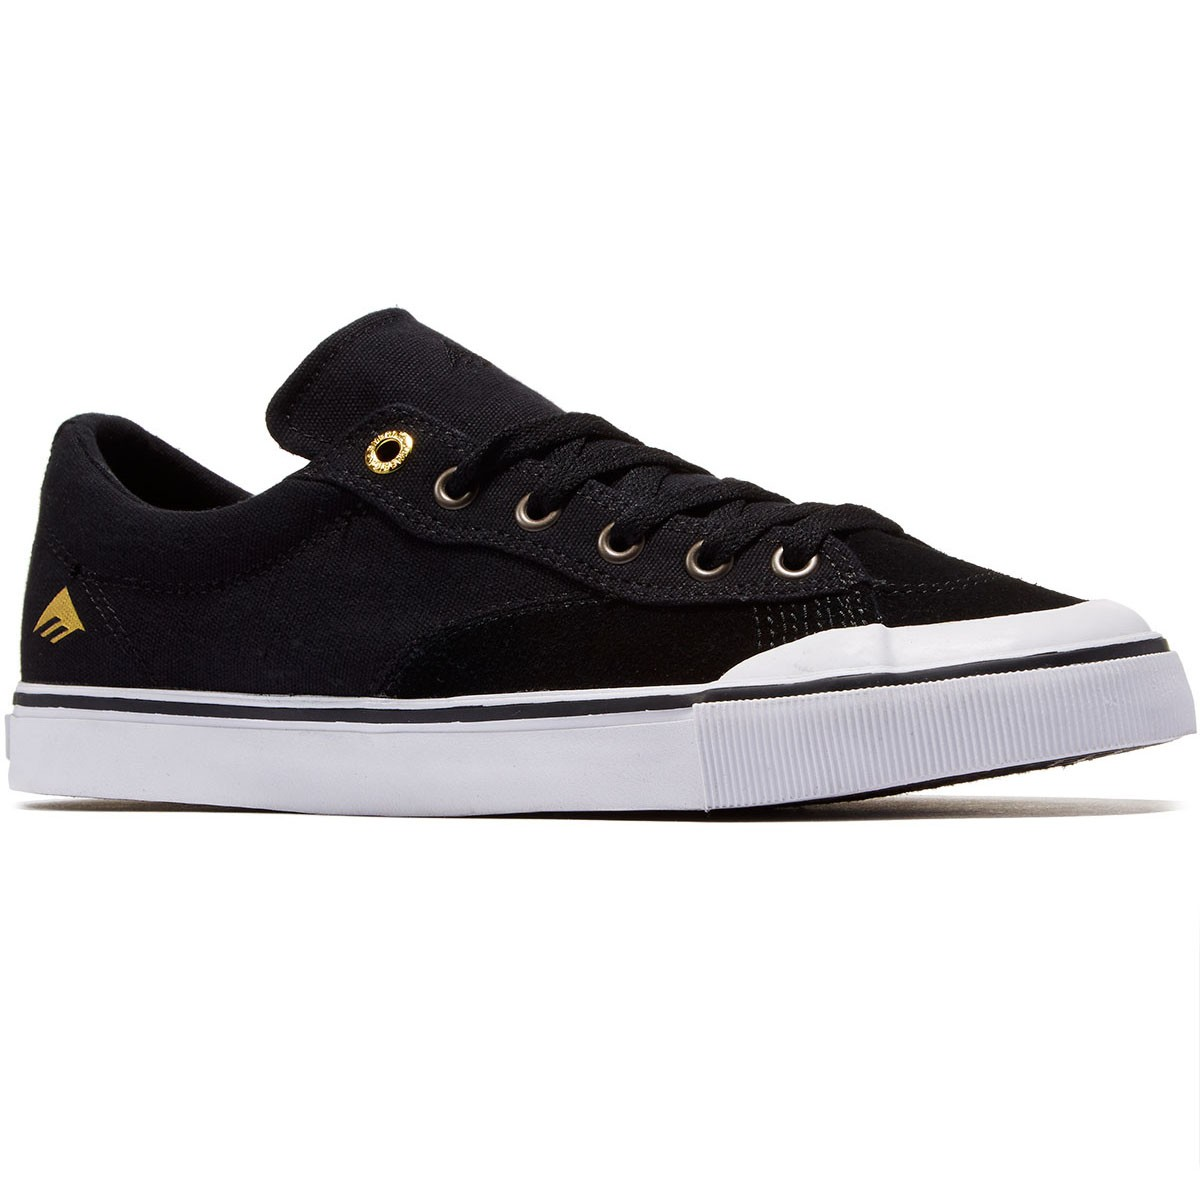 Emerica Indicator Low Shoes - Black/White - 8.0